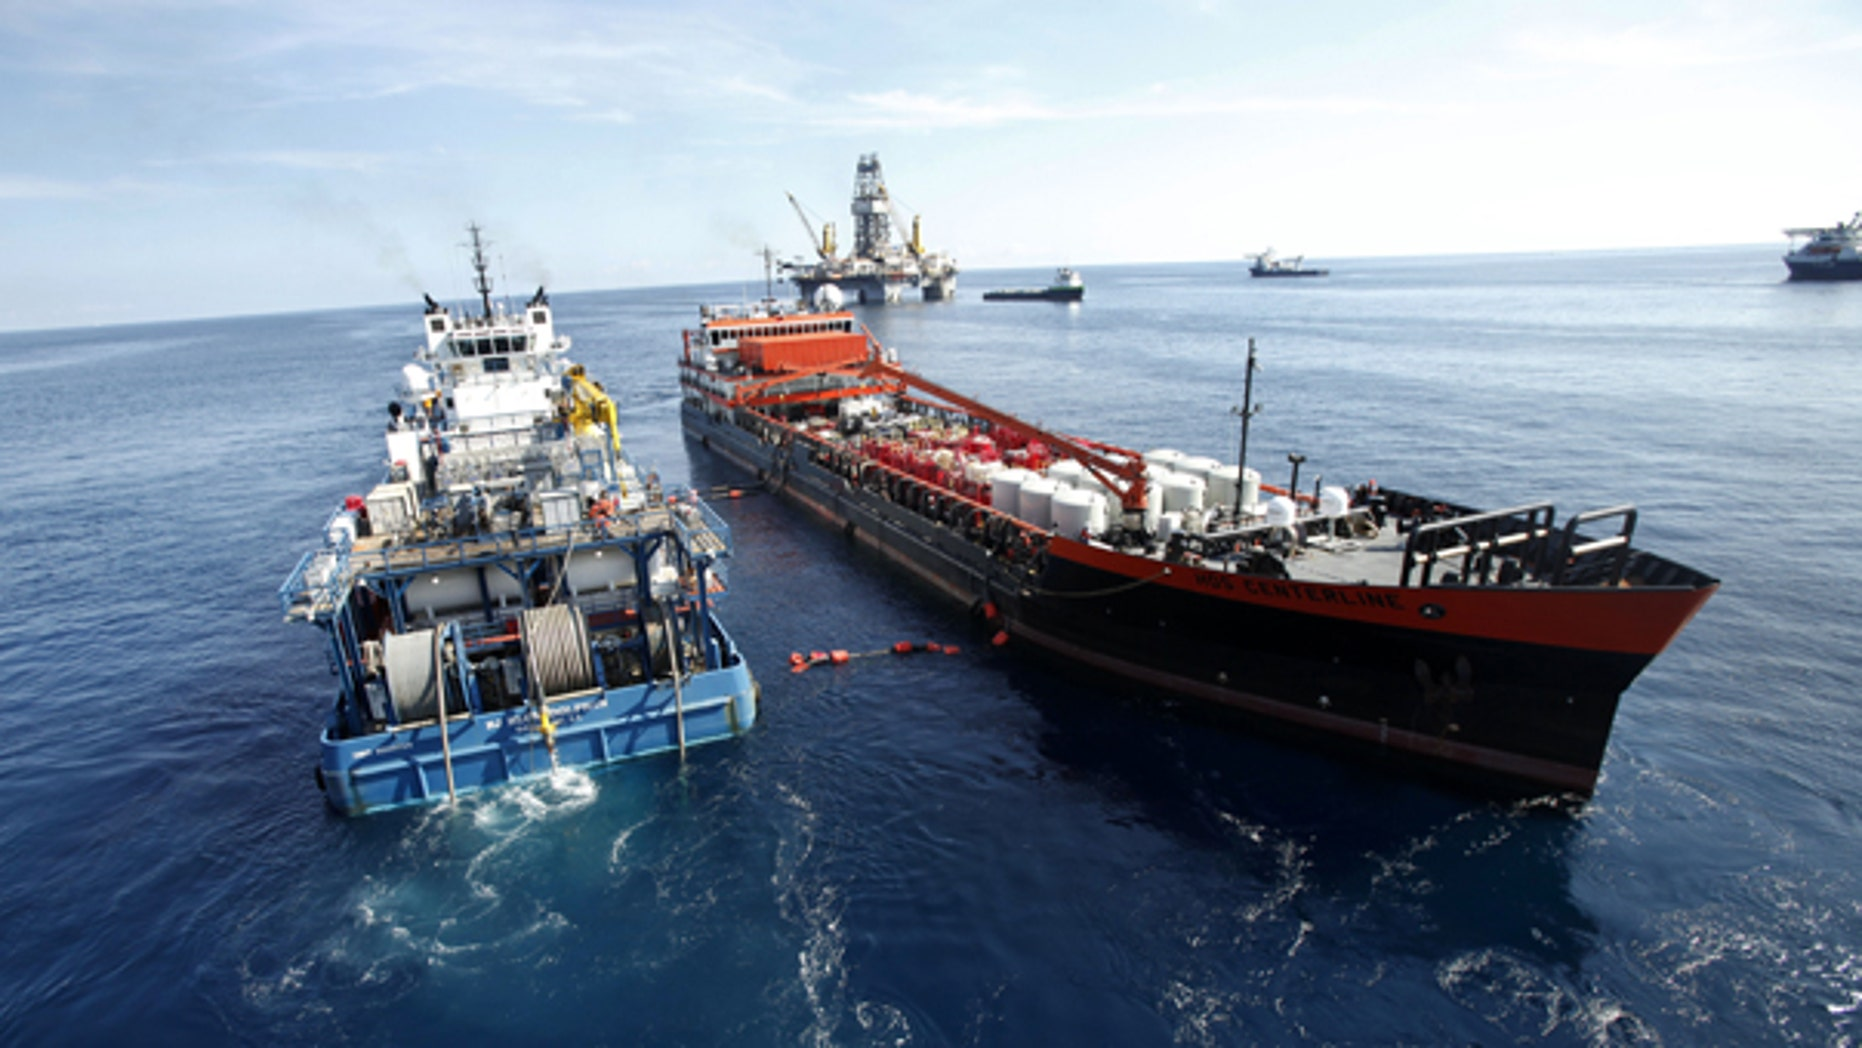 Aug 3: Ships are seen delivering the mud through hoses at the site of the Deepwater Horizon Oil Spill in Gulf of Mexico.